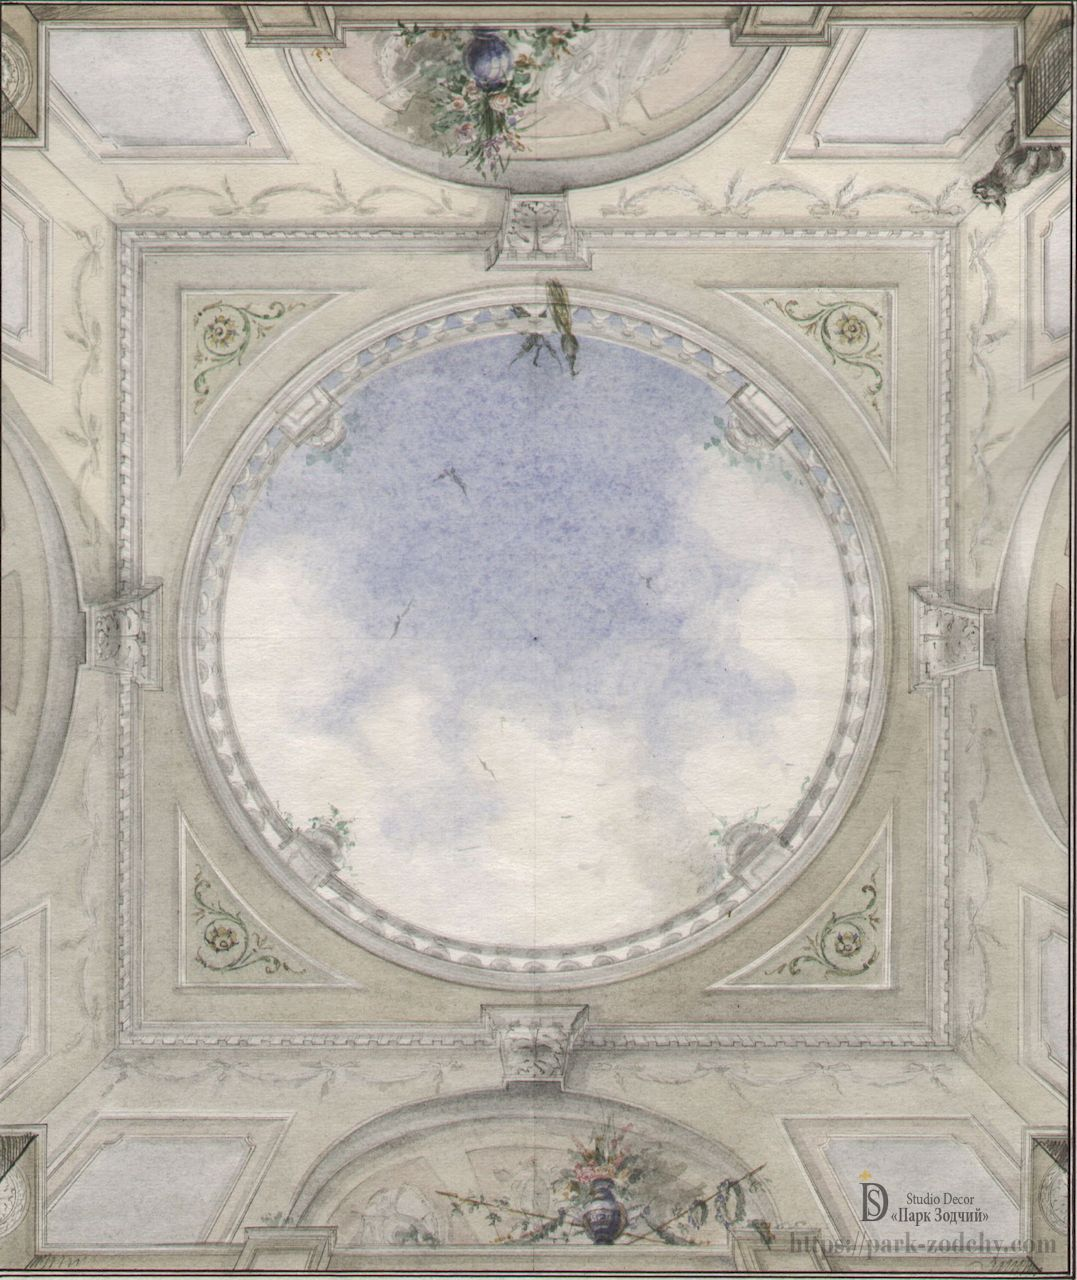 Ceiling painting project